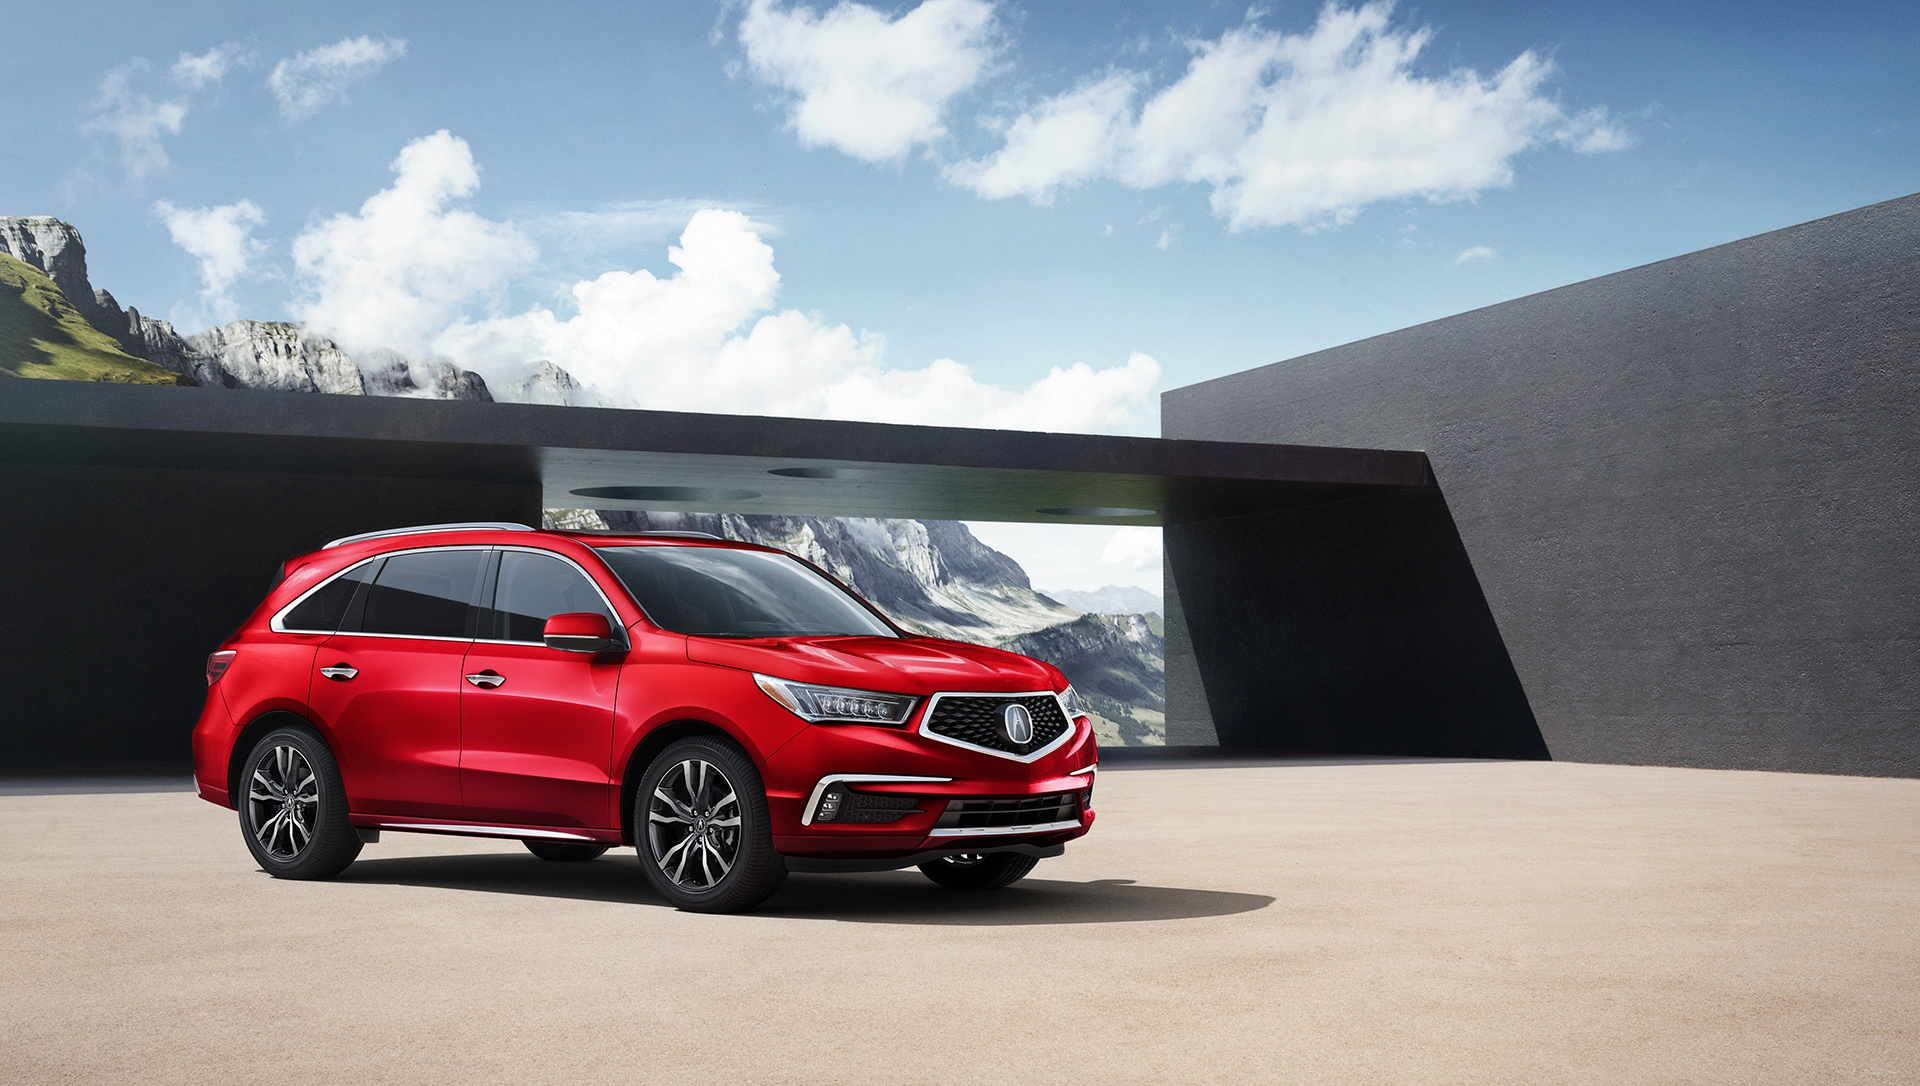 Compare the 2020 Lexus RX & the 2020 Acura MDX at Acura Hunt Valley | Red 2020 Acura MDX parked on tan concrete